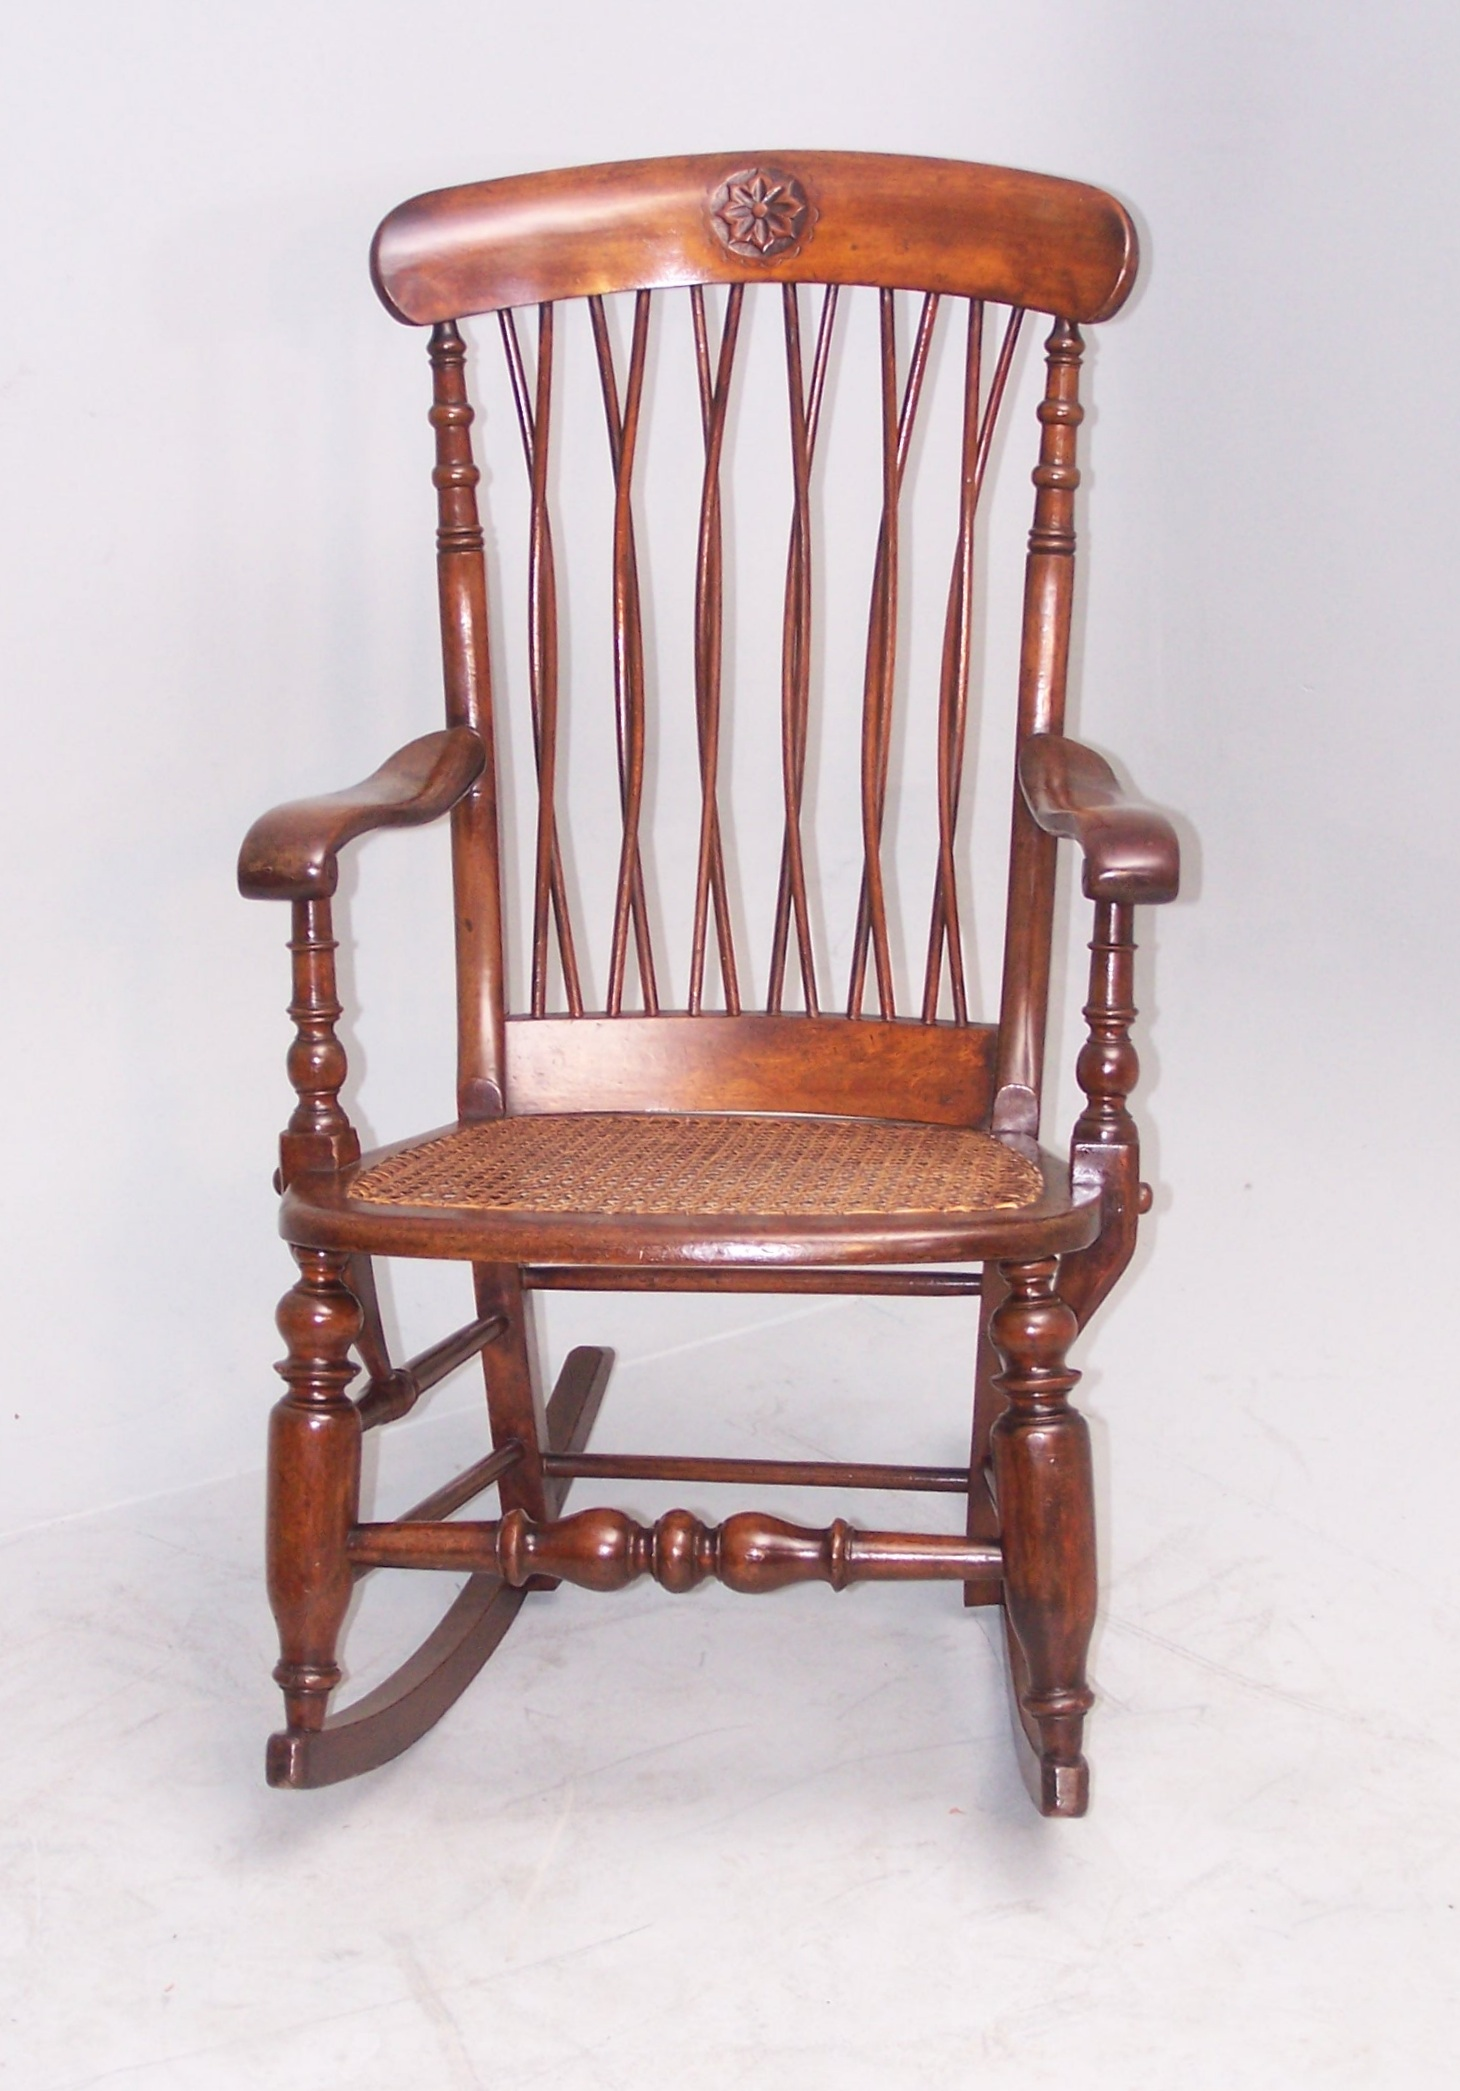 Antique Unusual Rocking Chair - Summers Davis Antiques & Interiors